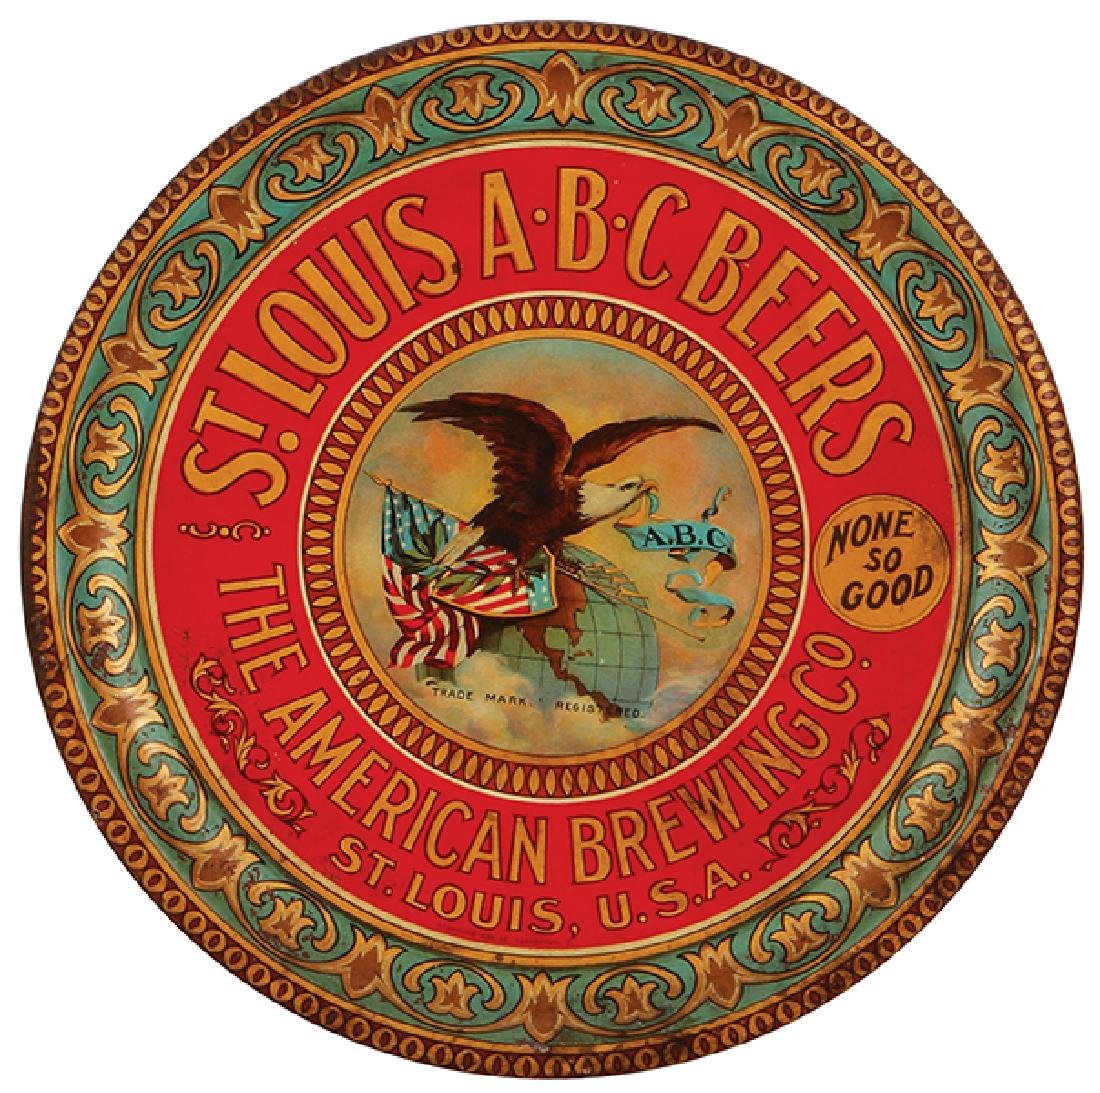 The American Brewing Co. tray